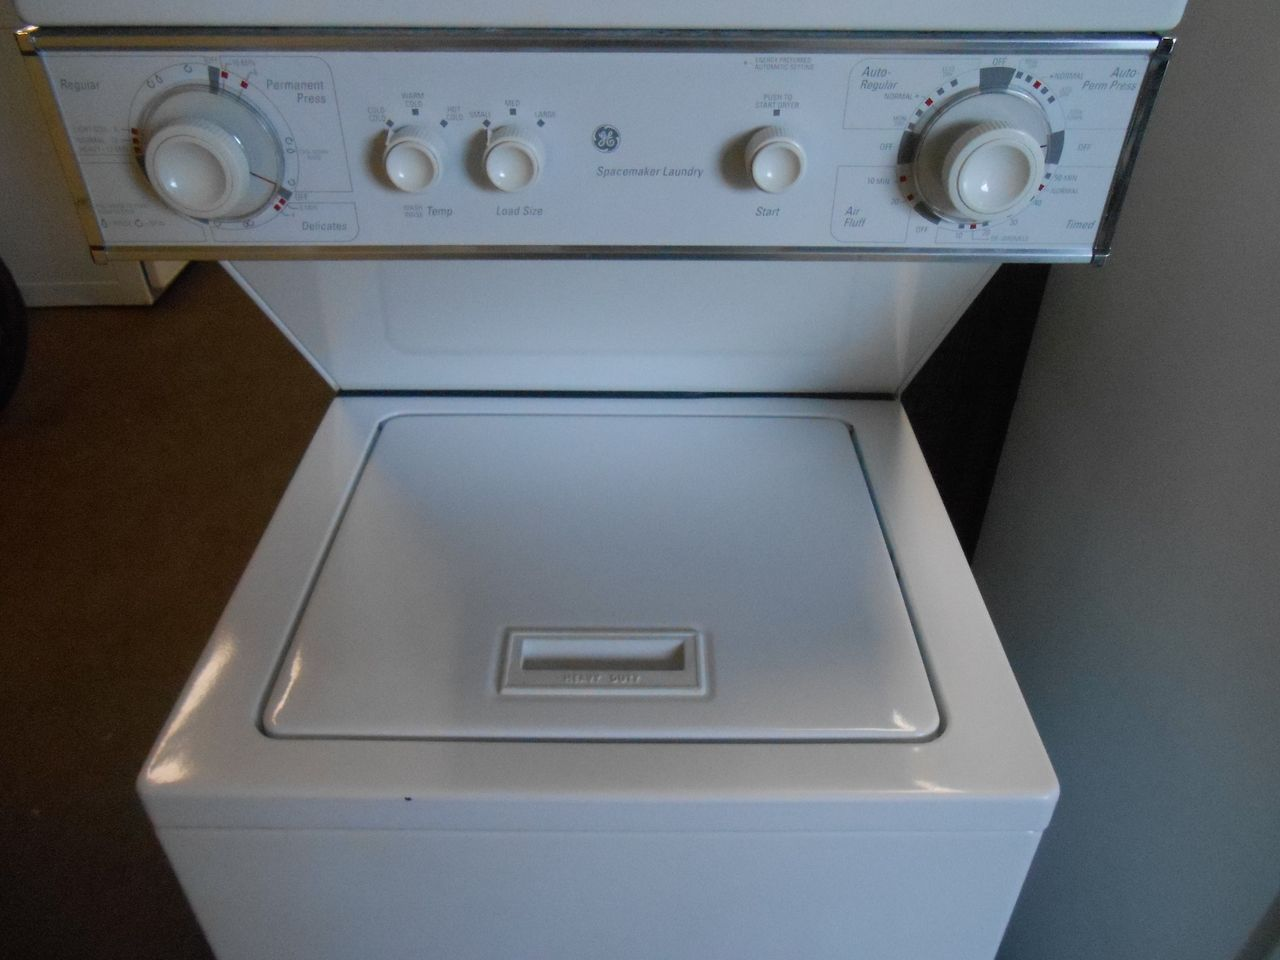 Ge 24 Inch Space Maker Laundry Center Built By Whirlpool Washer 4